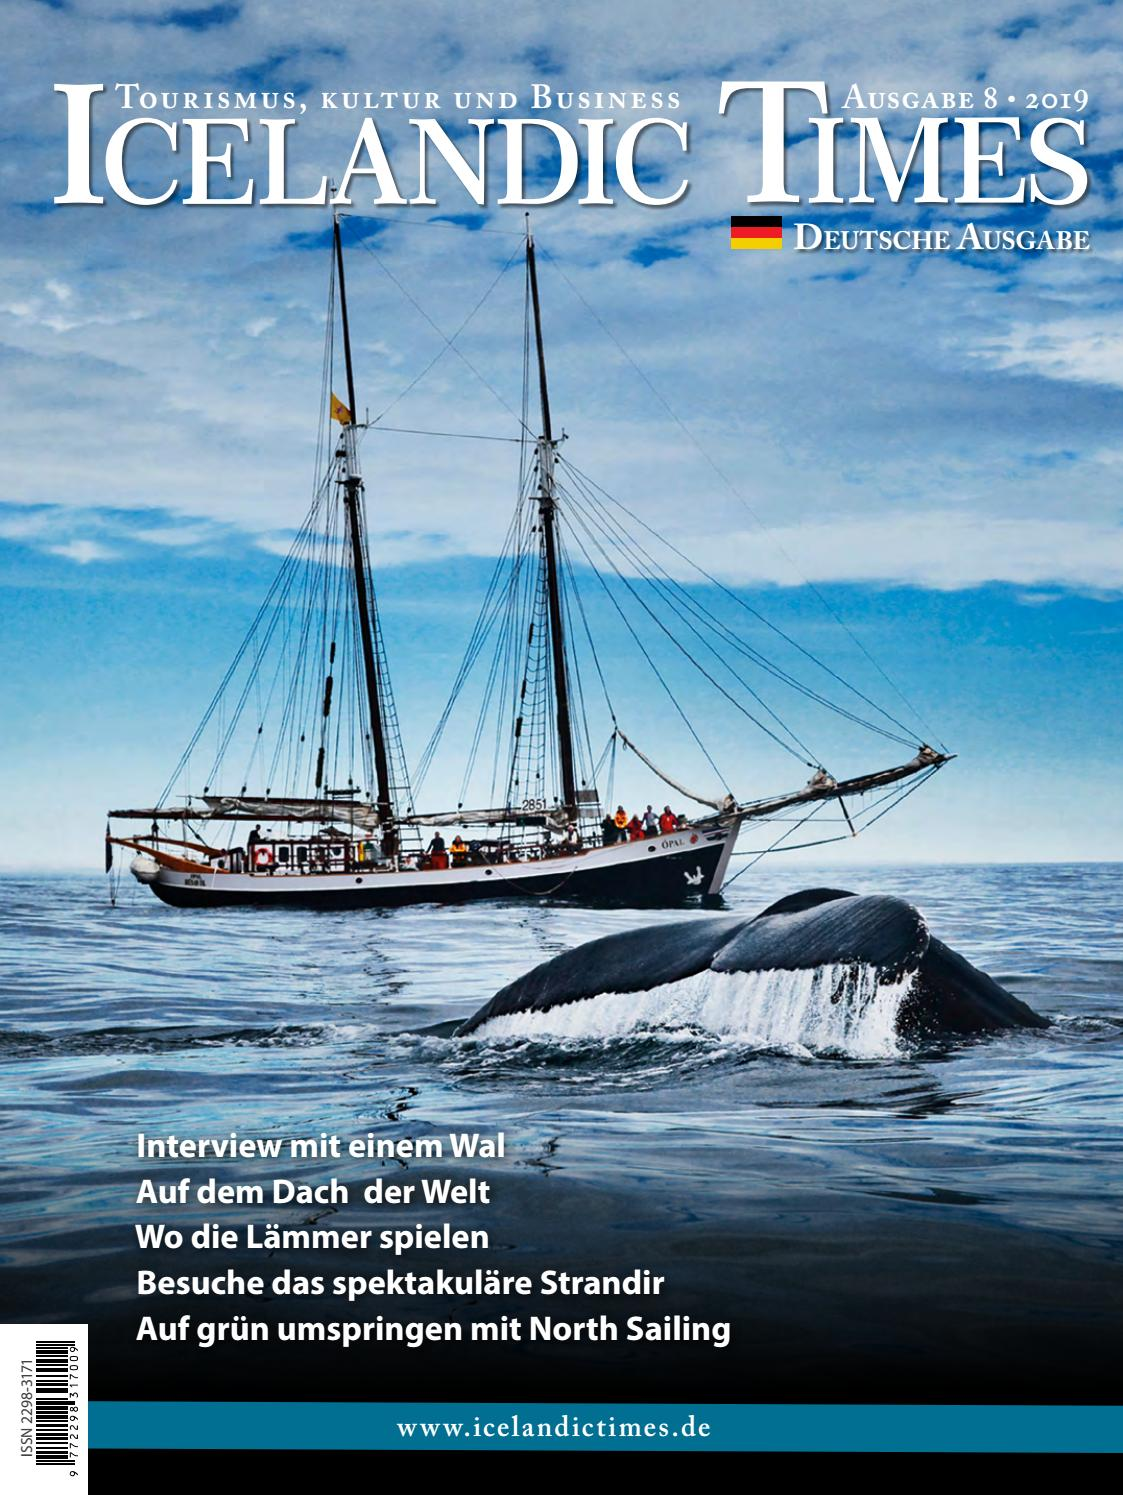 Icelandic Times Issue 8 by Icelandic Times issuu